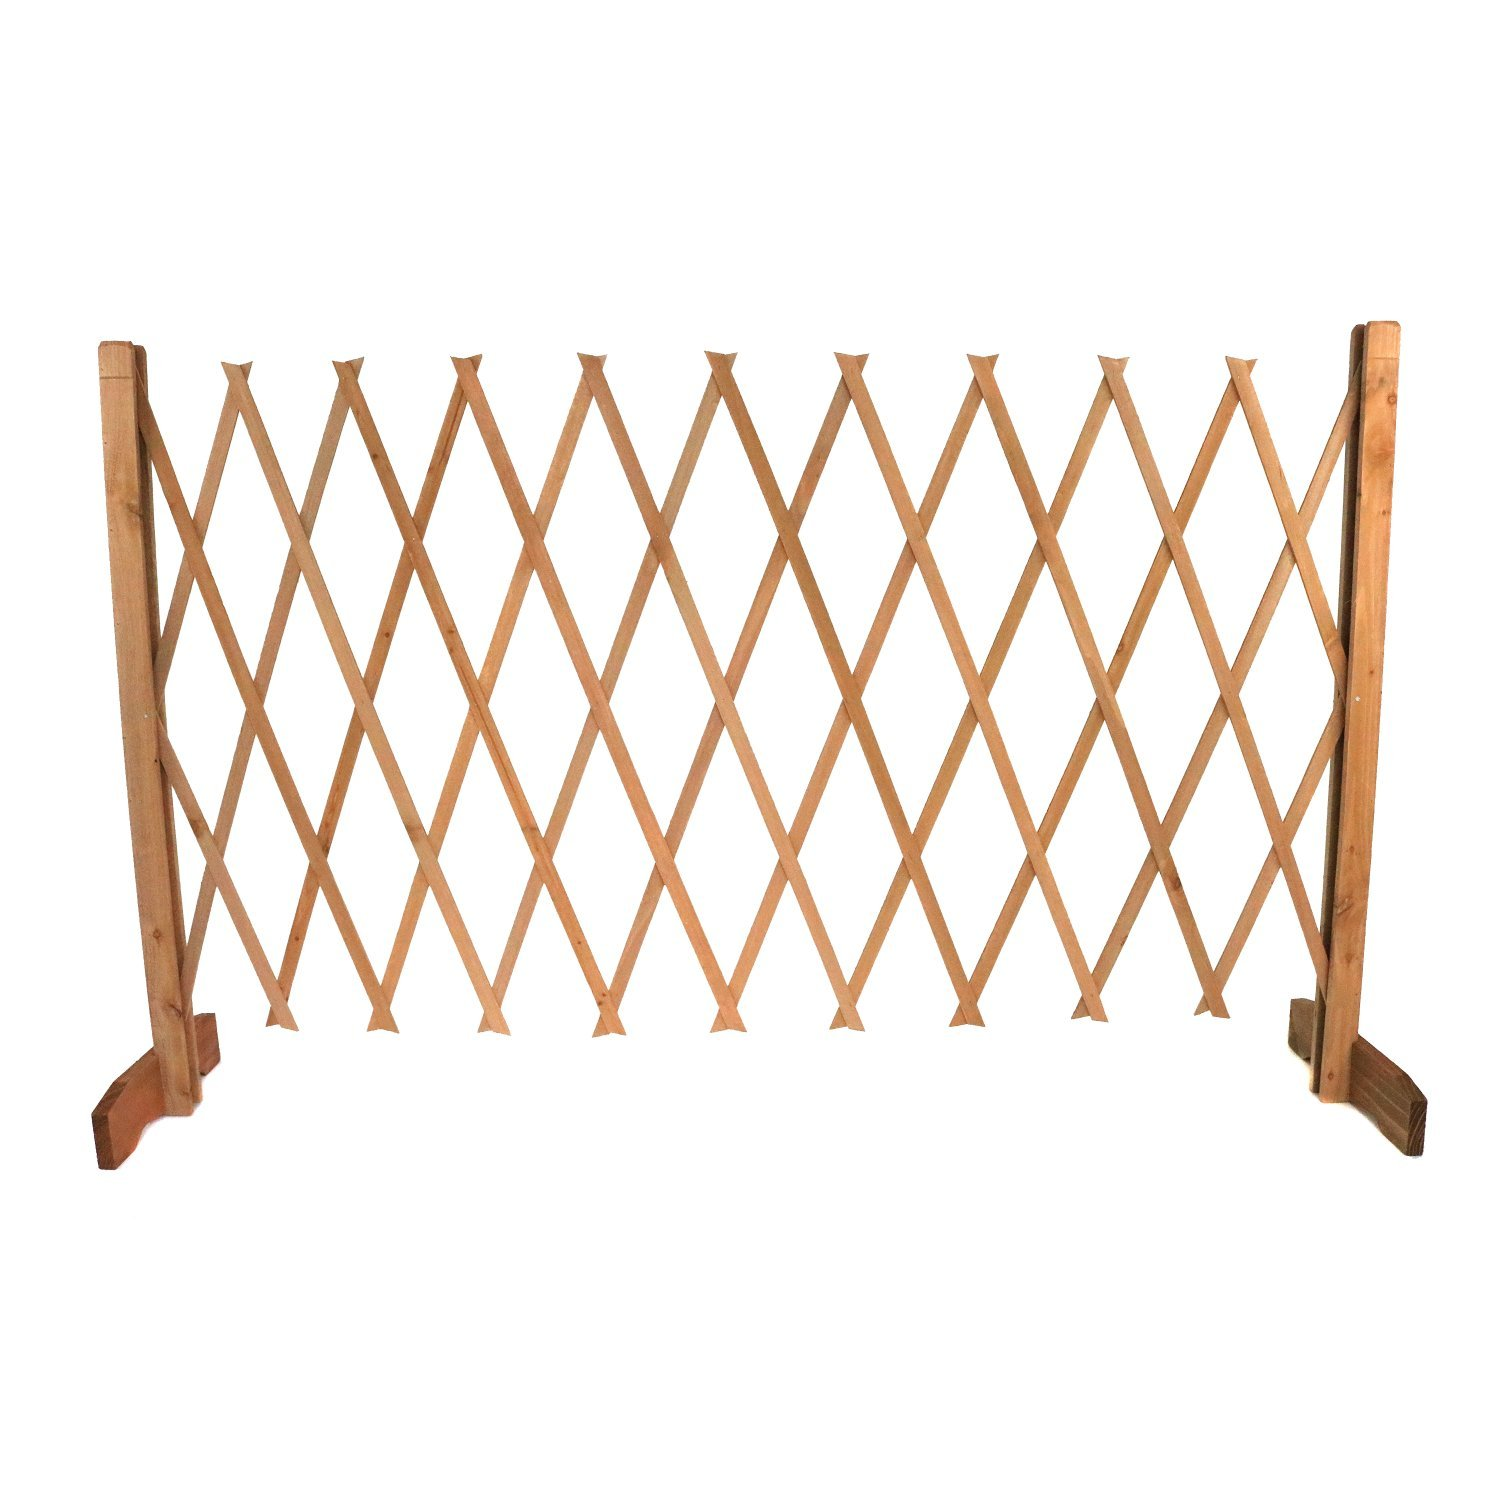 Expanding Freestanding Wooden Trellis Fence Garden Screen